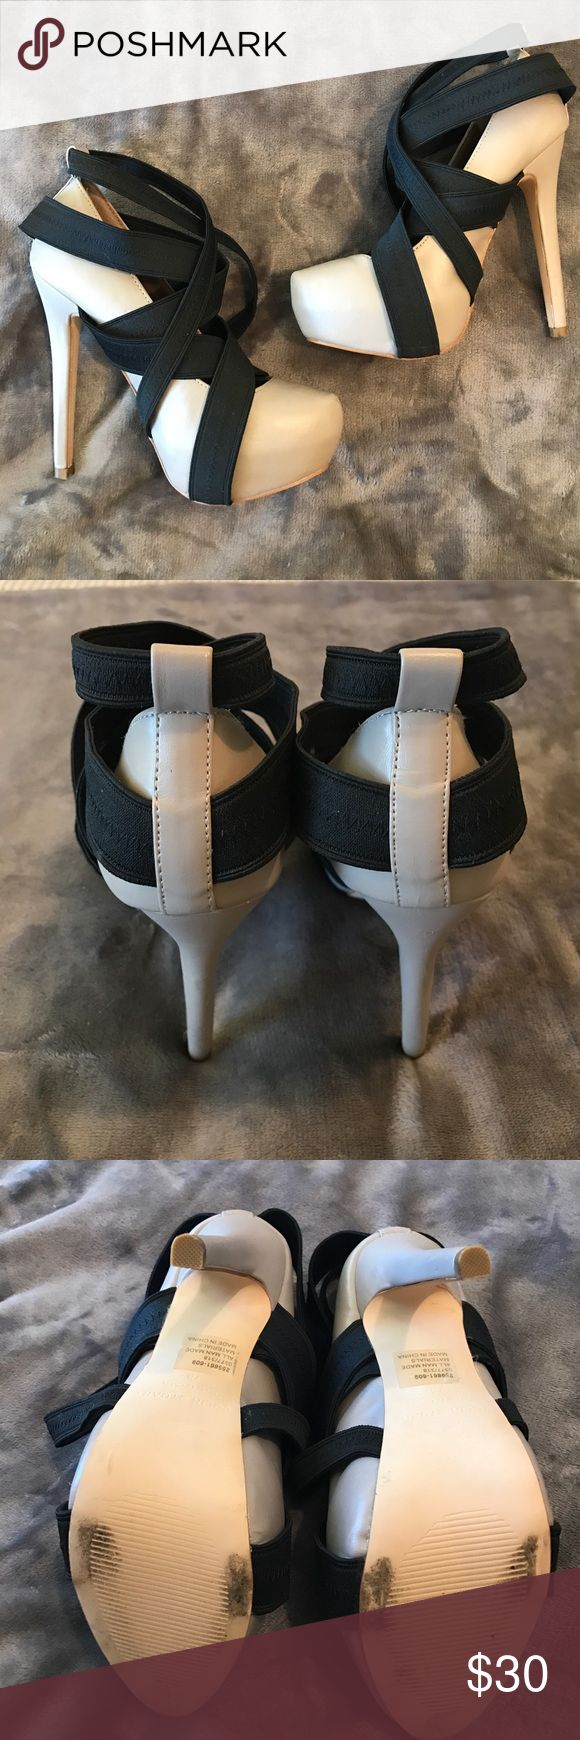 Colin Stuart for Victoria's Secret heels Grey with black elastic straps, very sexy and comfortable Colin Stuart Shoes Heels